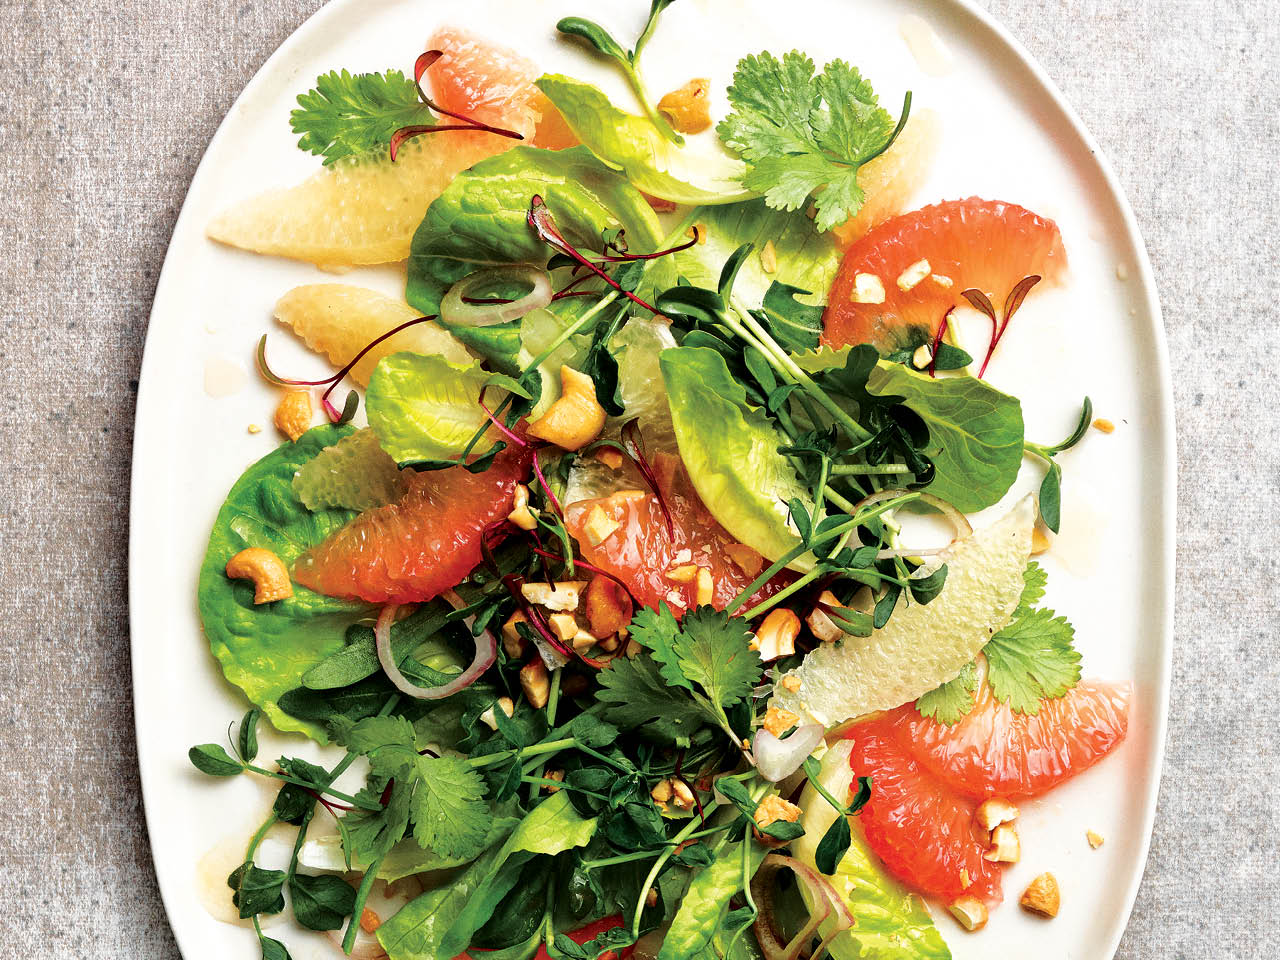 Thai citrus salad